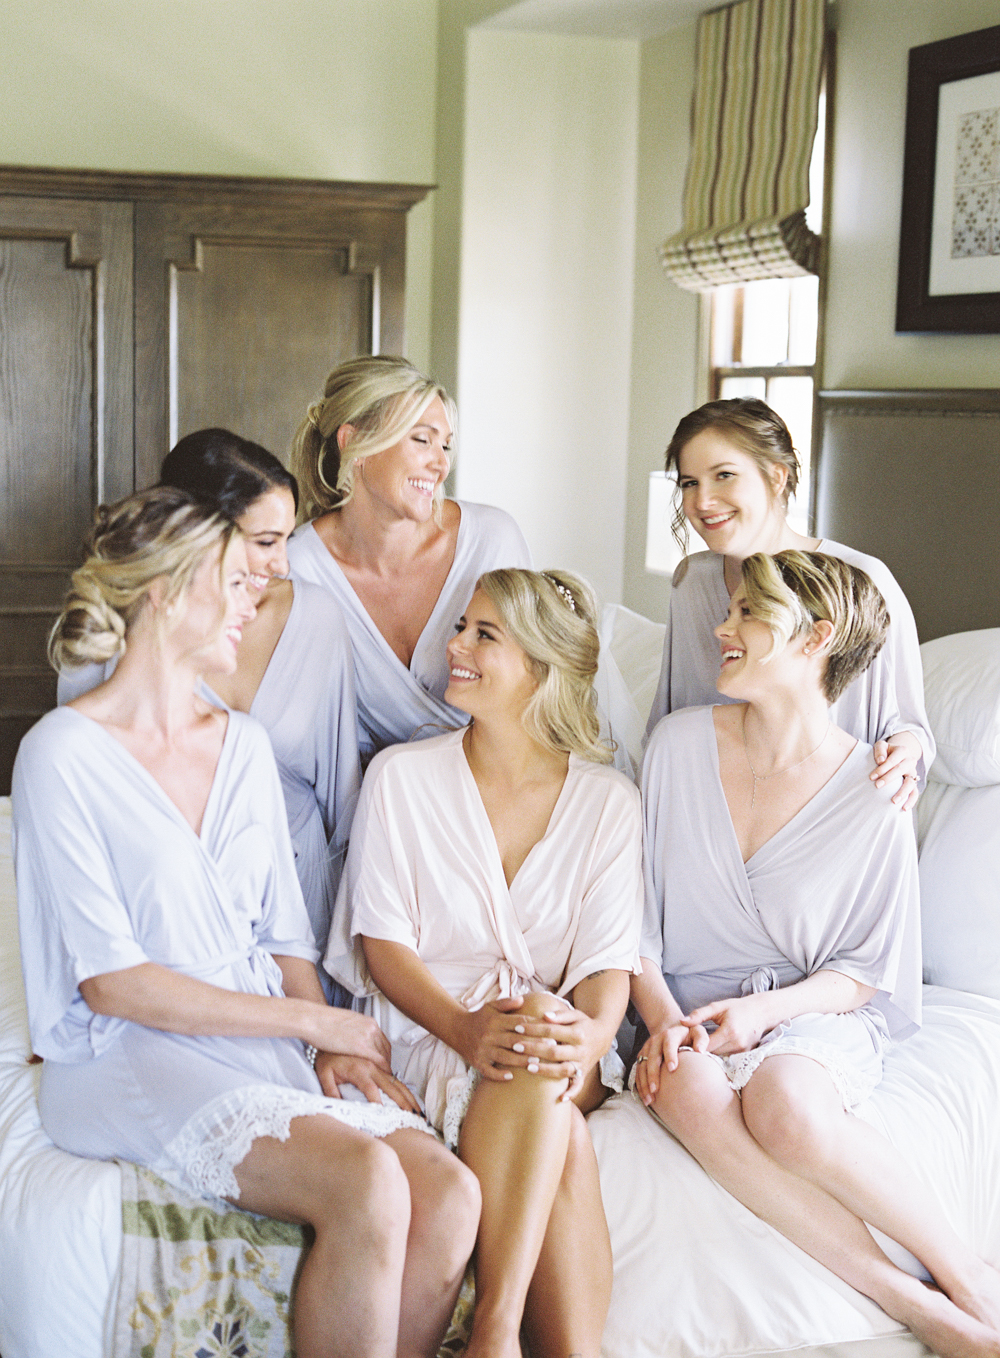 Bridal suite | Bride Getting Ready | Bridesmaids robes | Mount Palomar Winery Wedding | Blush and Lavender | San Diego wedding photographer | Temecula wedding photographer | Southern California film photographer | Whiskers and Willow Photography